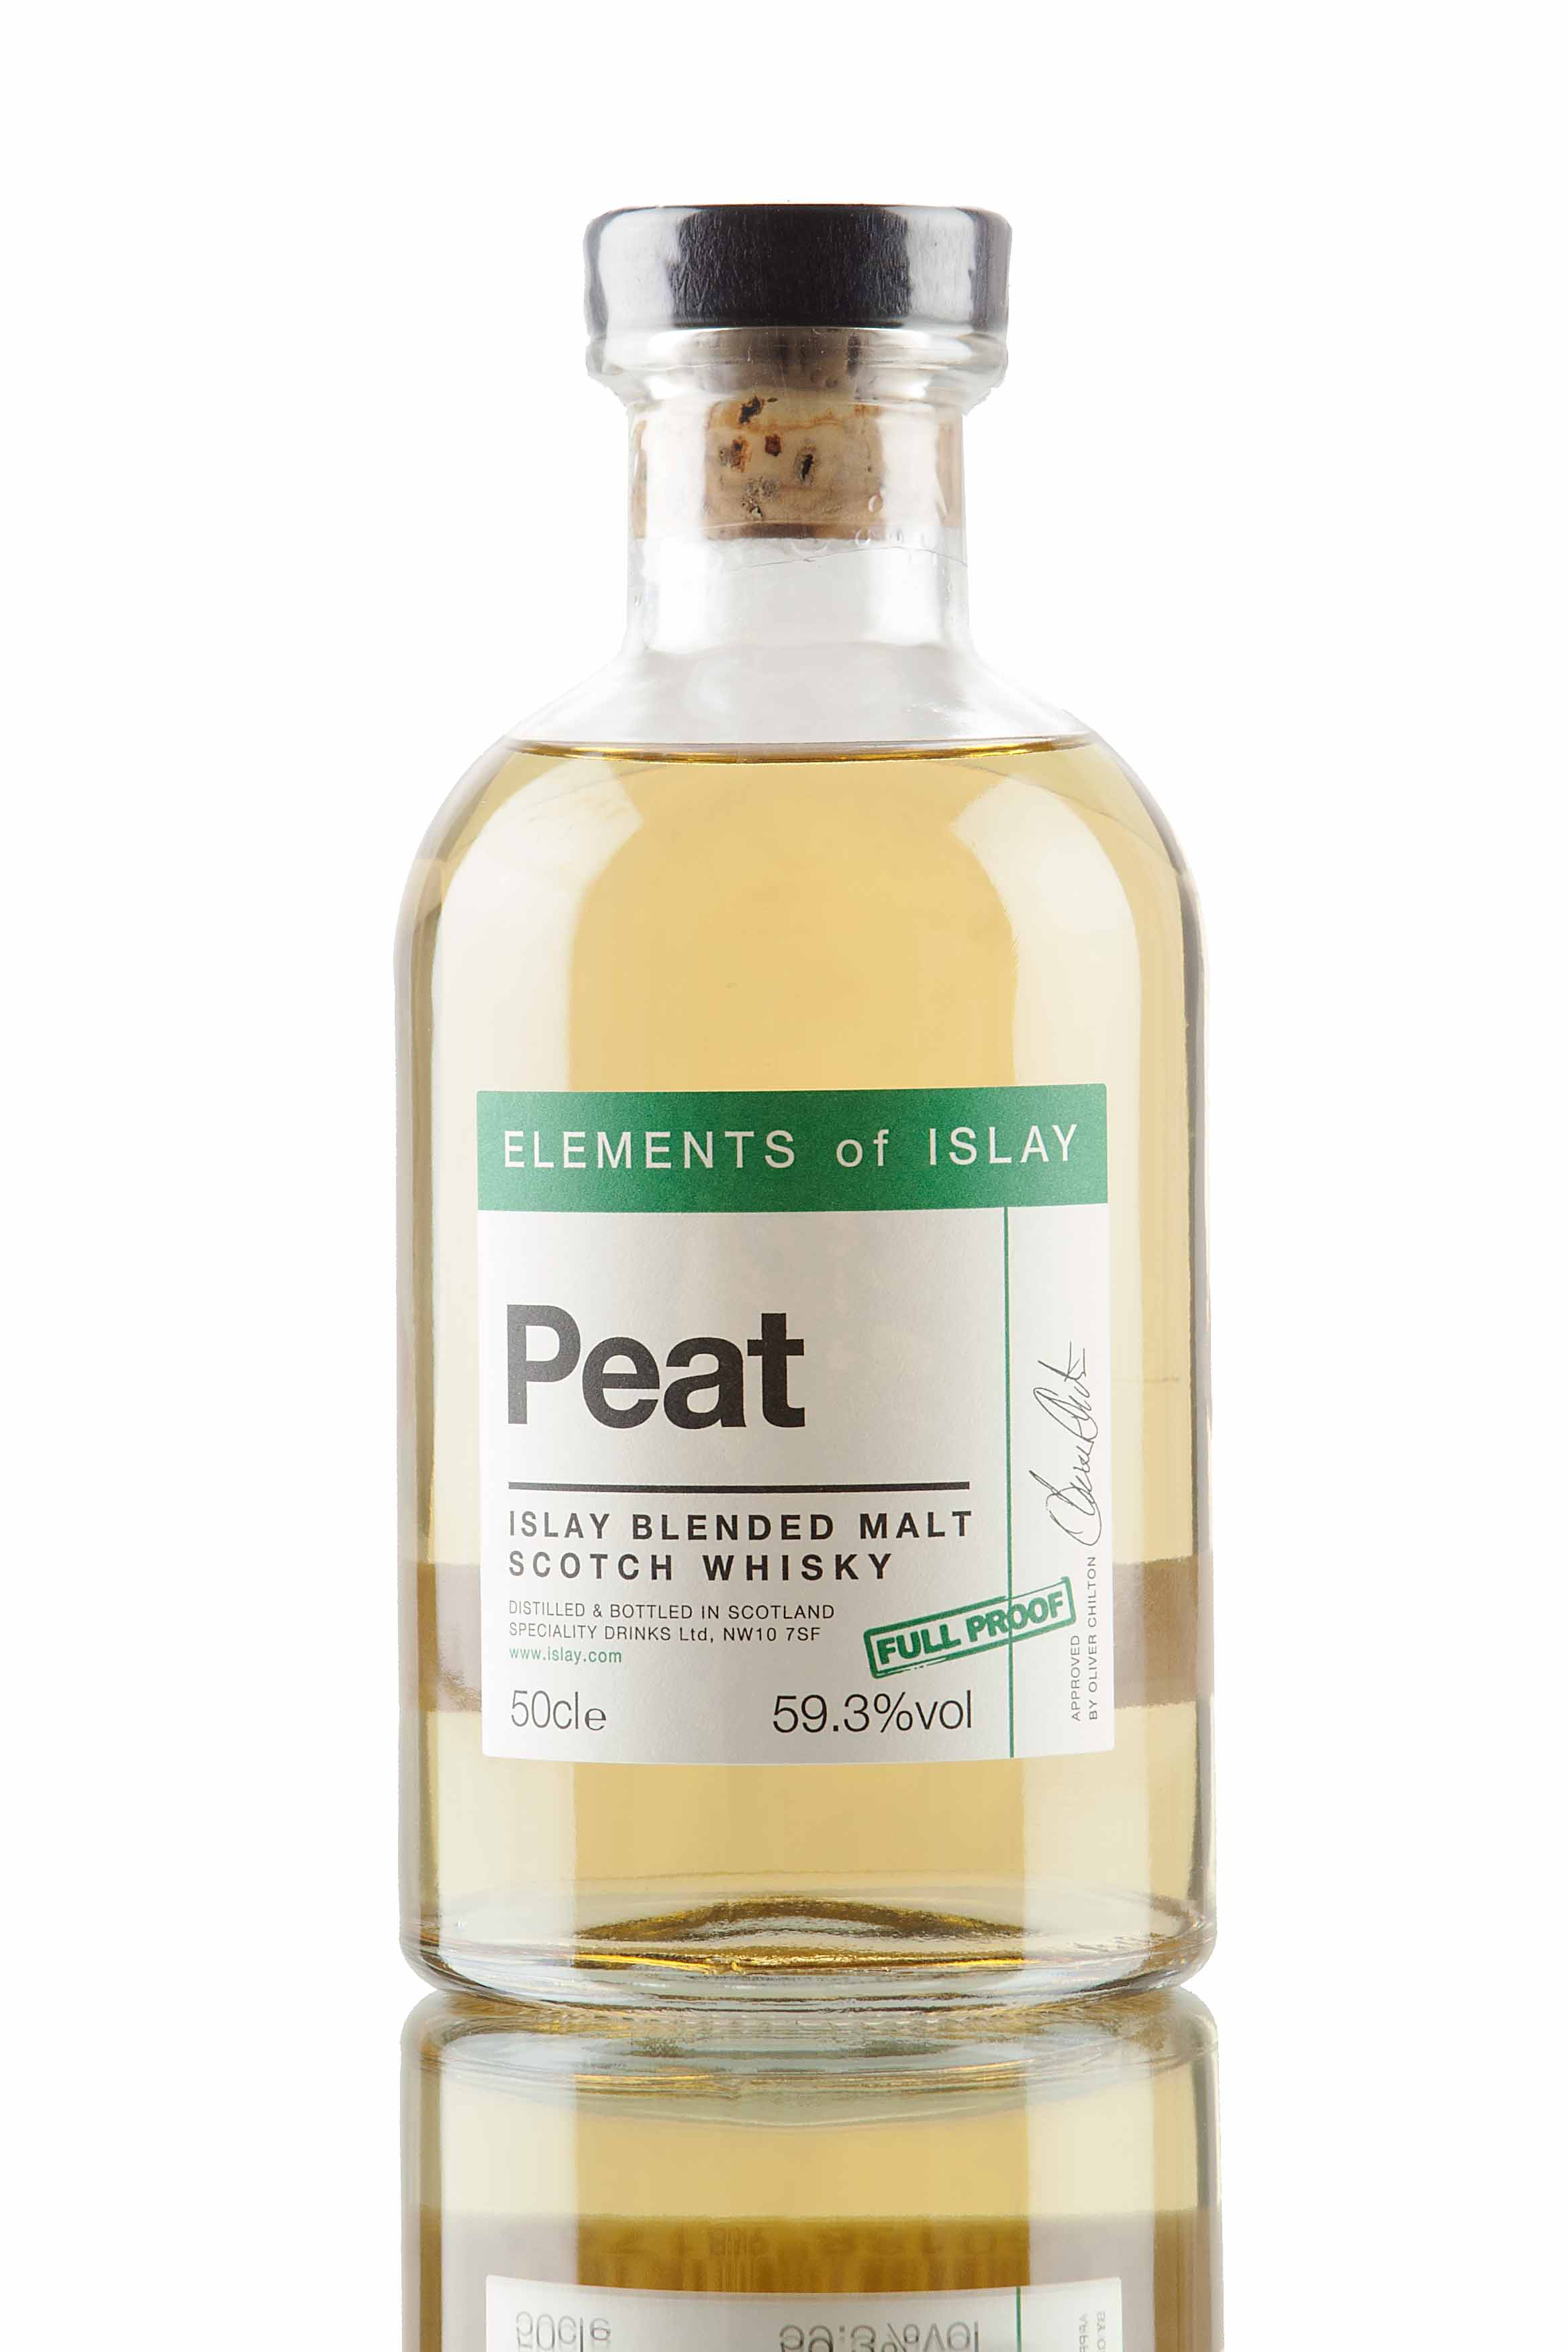 Peat (Full Proof) - Elements of Islay